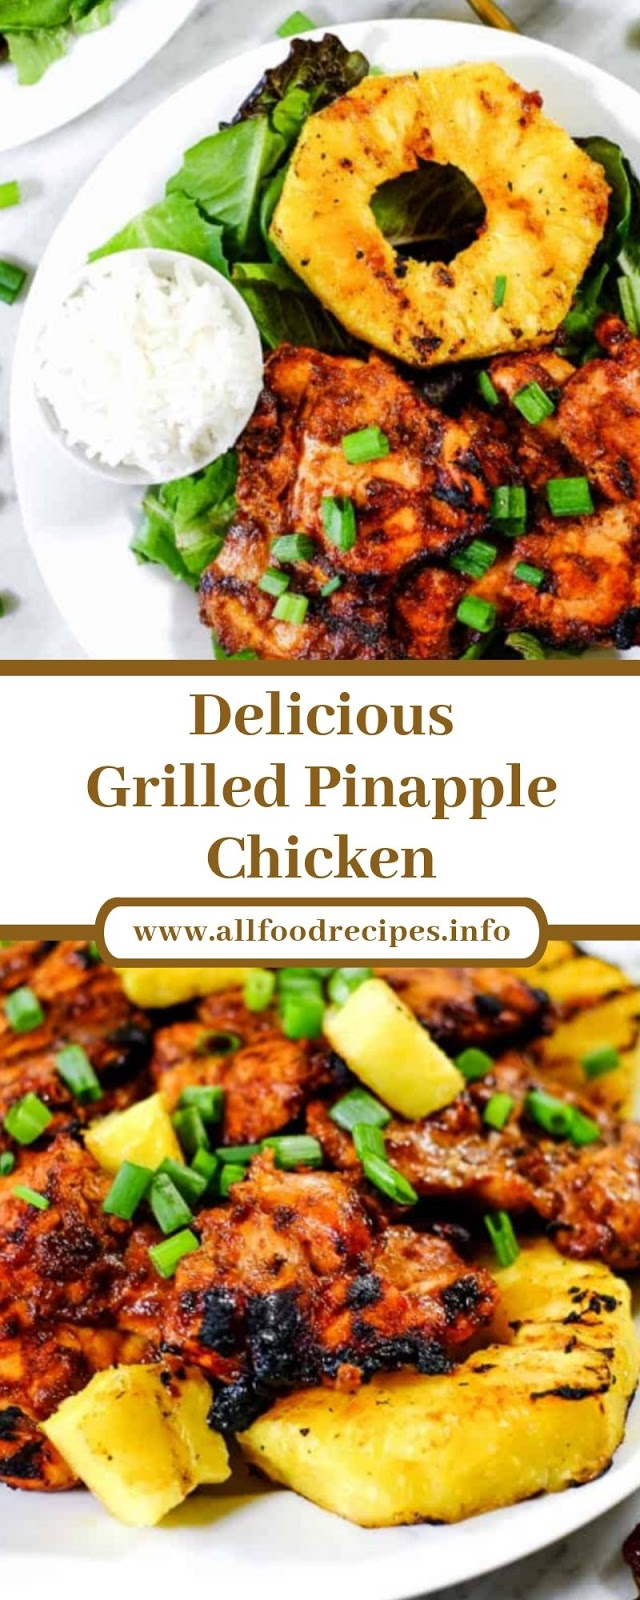 Delicious Grilled Pinapple Chicken